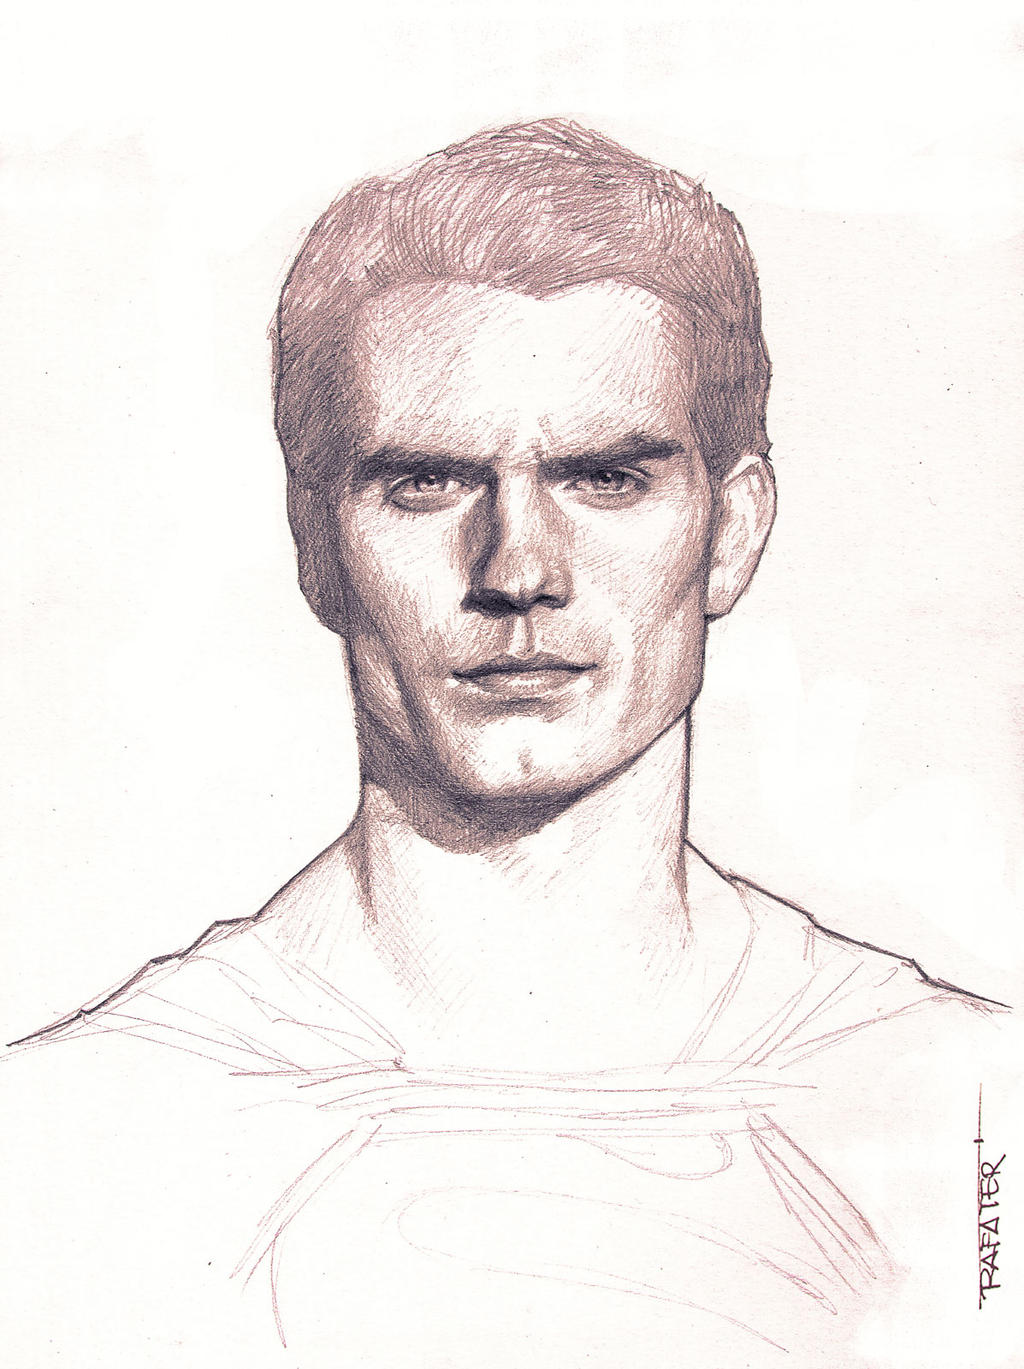 Man of steel pencil drawing by rafater on deviantart